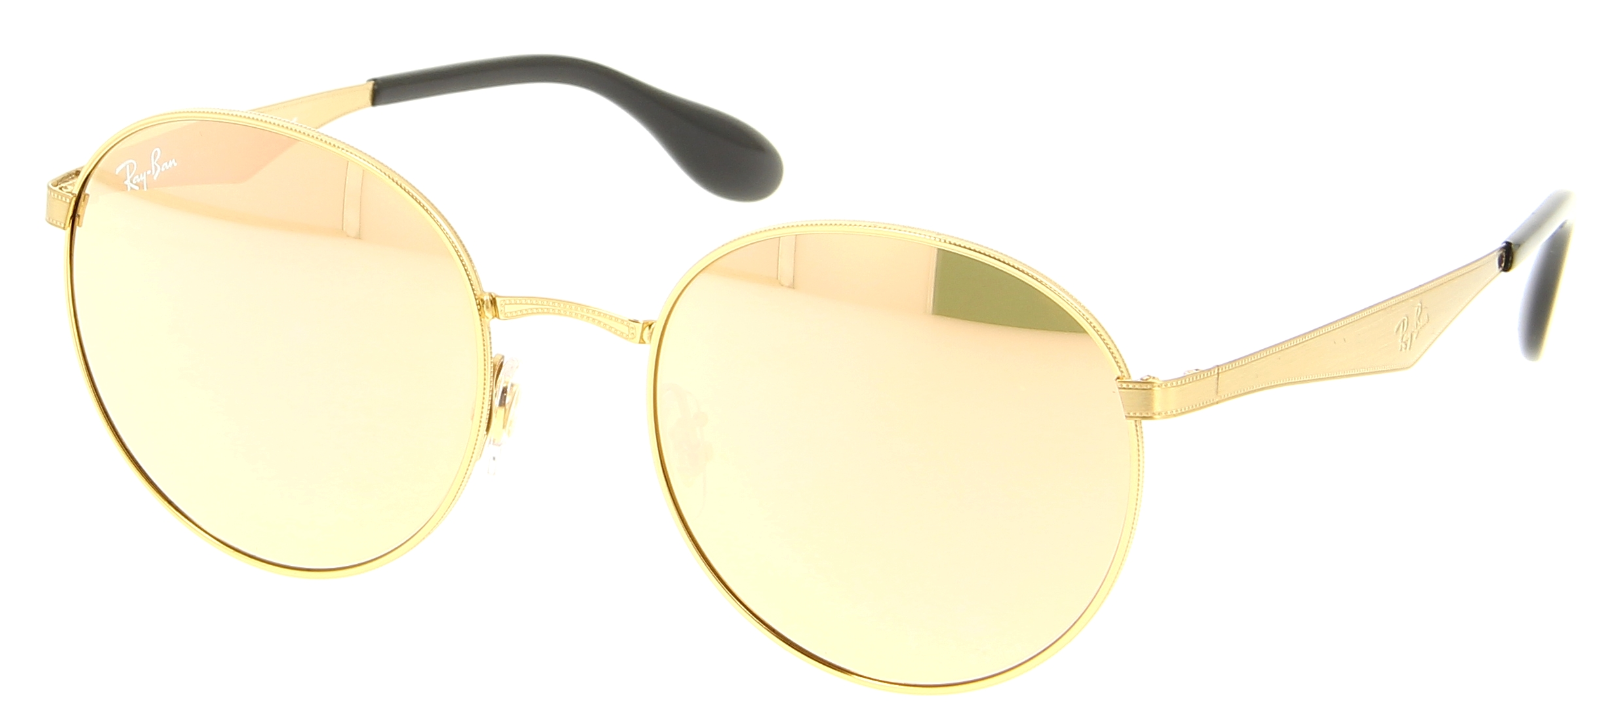 7ce24f60ed940 Ray Ban Round Metal Sunglasses RB 3537 c. 001 2Y Gold w  Copper